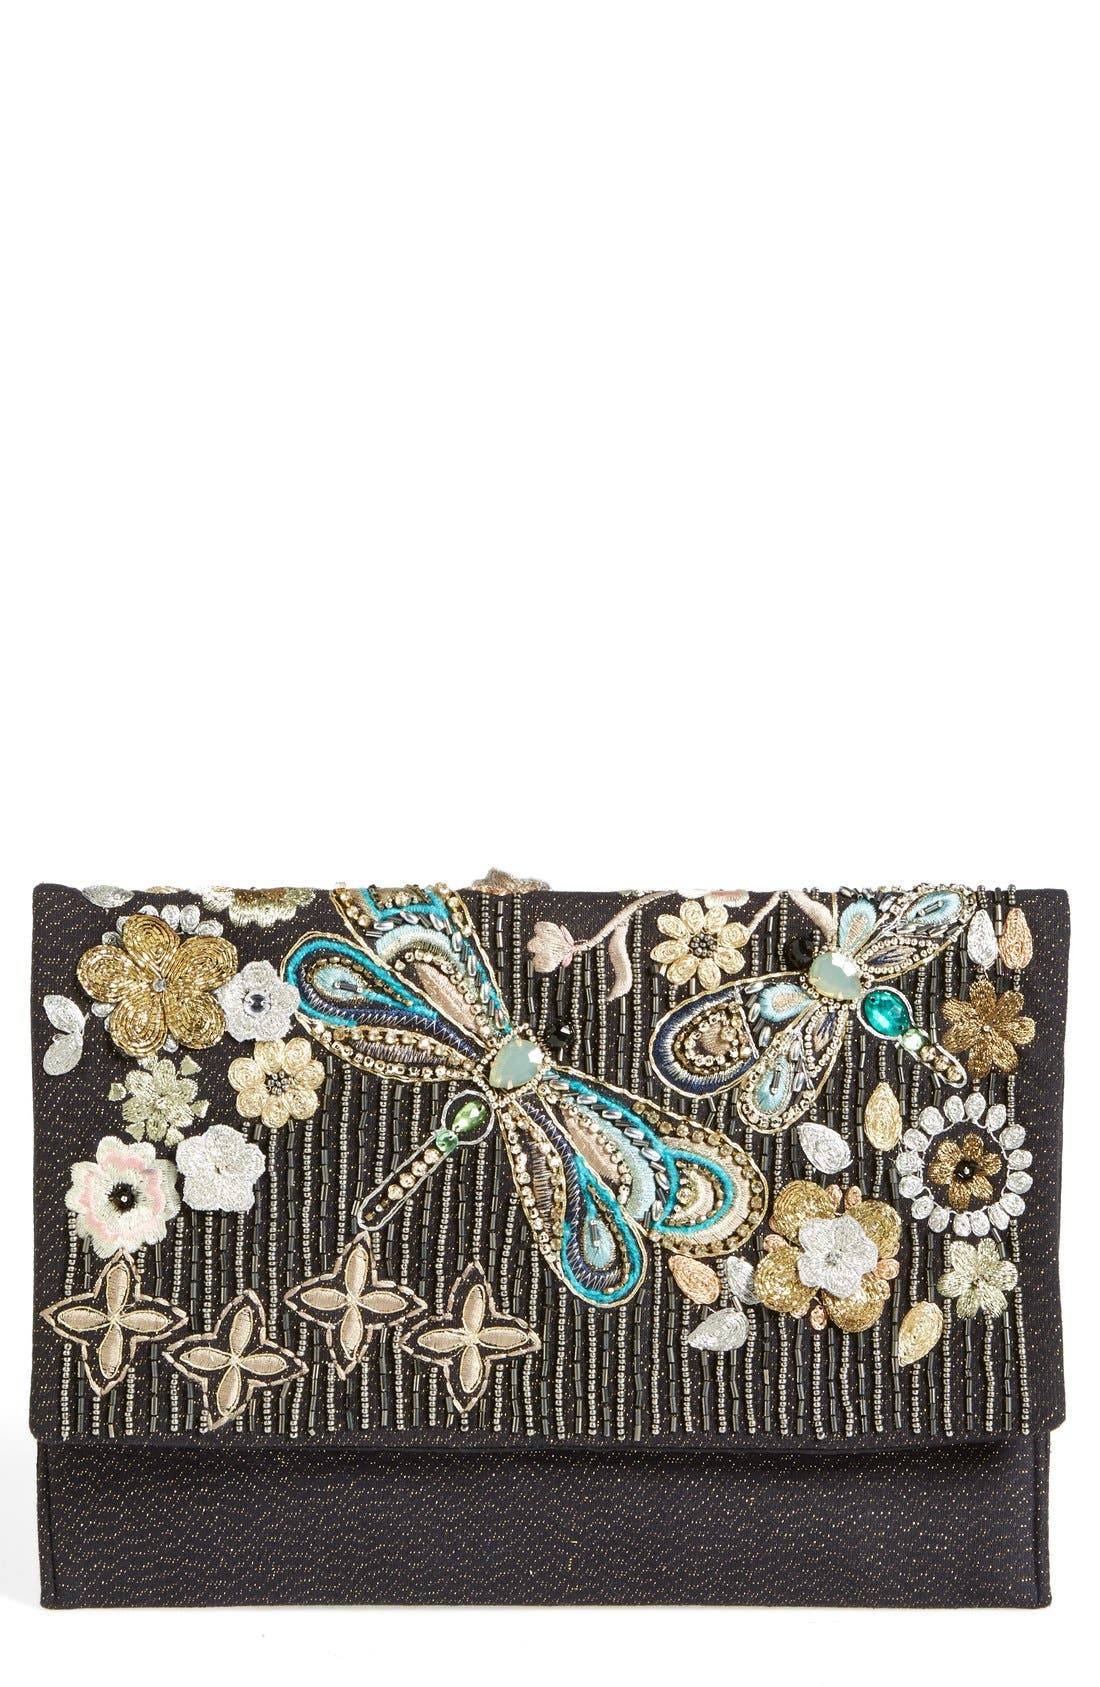 Main Image - Berry Beaded Dragonfly Oversize Clutch